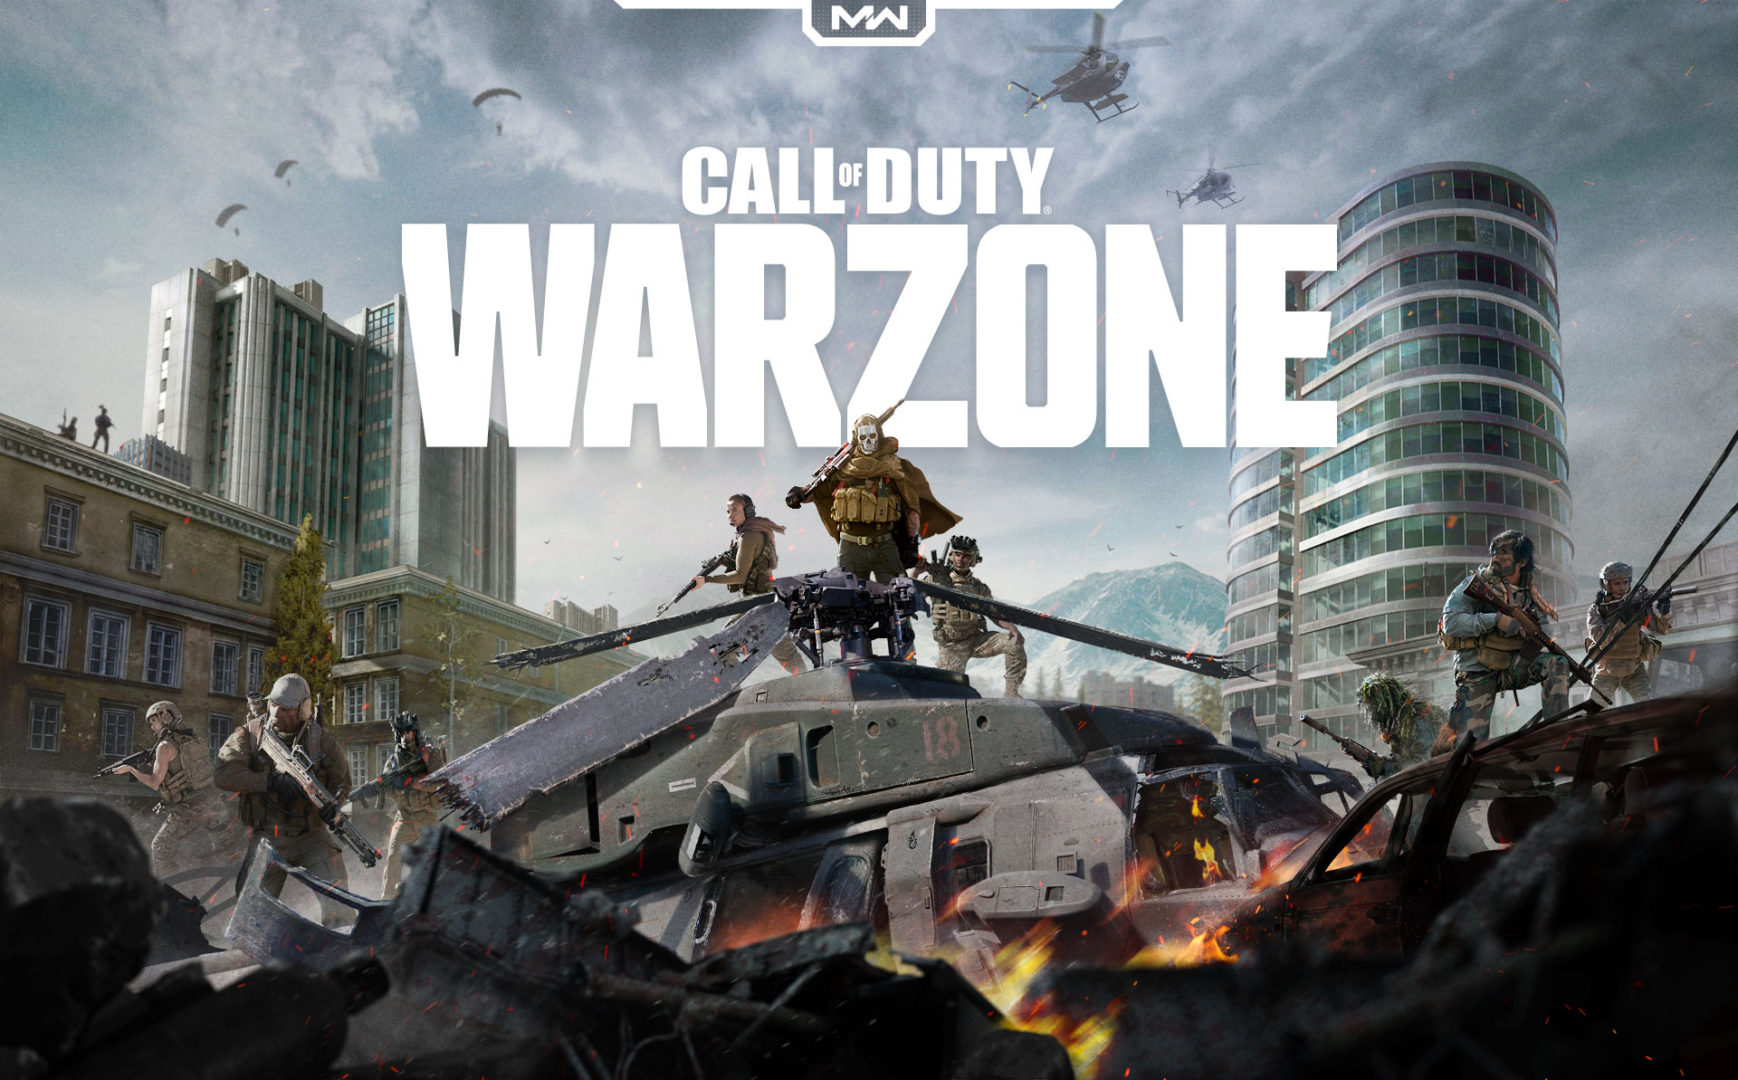 Call of Duty: Warzone free to play